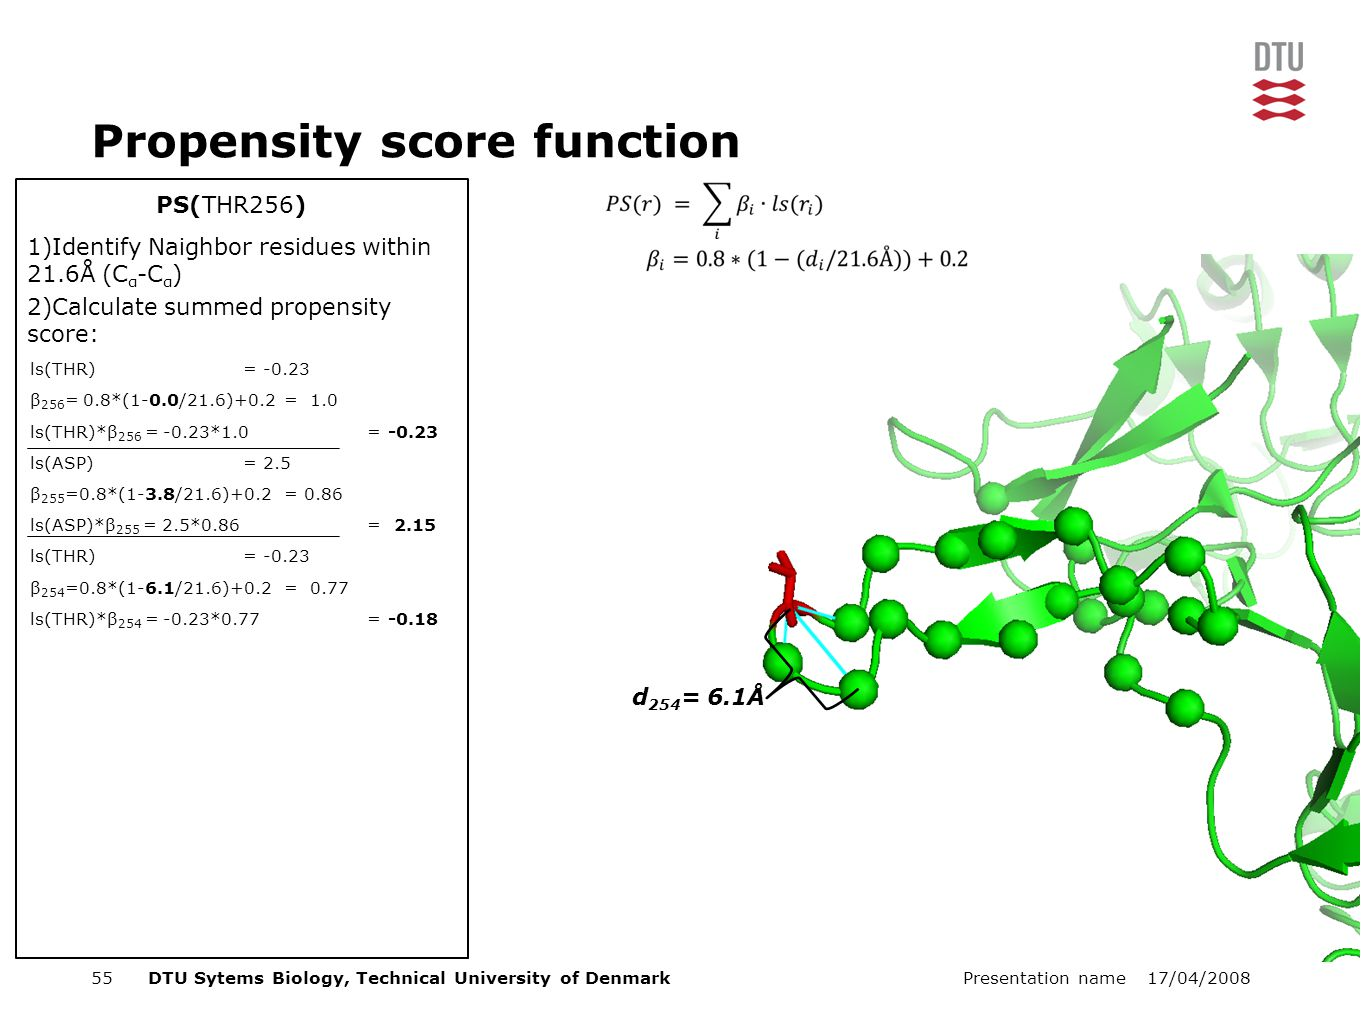 17/04/2008Presentation name55DTU Sytems Biology, Technical University of Denmark PS(THR256) Propensity score function 1)Identify Naighbor residues within 21.6Å (C α -C α ) 2)Calculate summed propensity score: ls(THR) = -0.23 β 256 = 0.8*(1-0.0/21.6)+0.2 = 1.0 ls(THR)*β 256 = -0.23*1.0 = -0.23 ls(ASP) = 2.5 β 255 =0.8*(1-3.8/21.6)+0.2 = 0.86 ls(ASP)*β 255 = 2.5*0.86 = 2.15 ls(THR) = -0.23 β 254 =0.8*(1-6.1/21.6)+0.2 = 0.77 ls(THR)*β 254 = -0.23*0.77 = -0.18 d 254 = 6.1Å